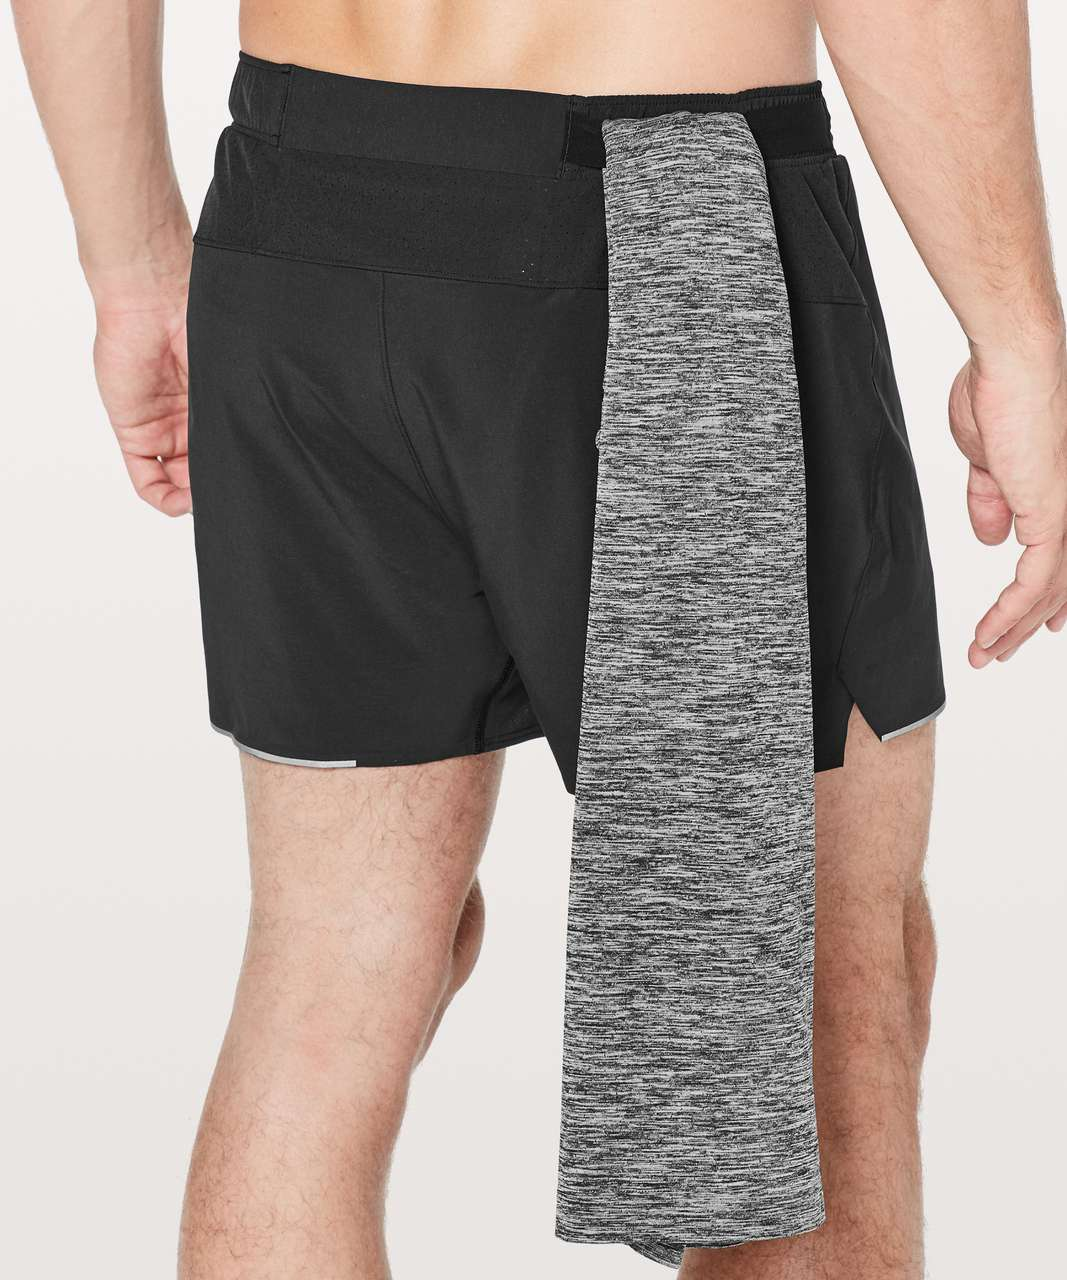 "Lululemon Surge Short Out Of Mind Liner 4"" - Black"